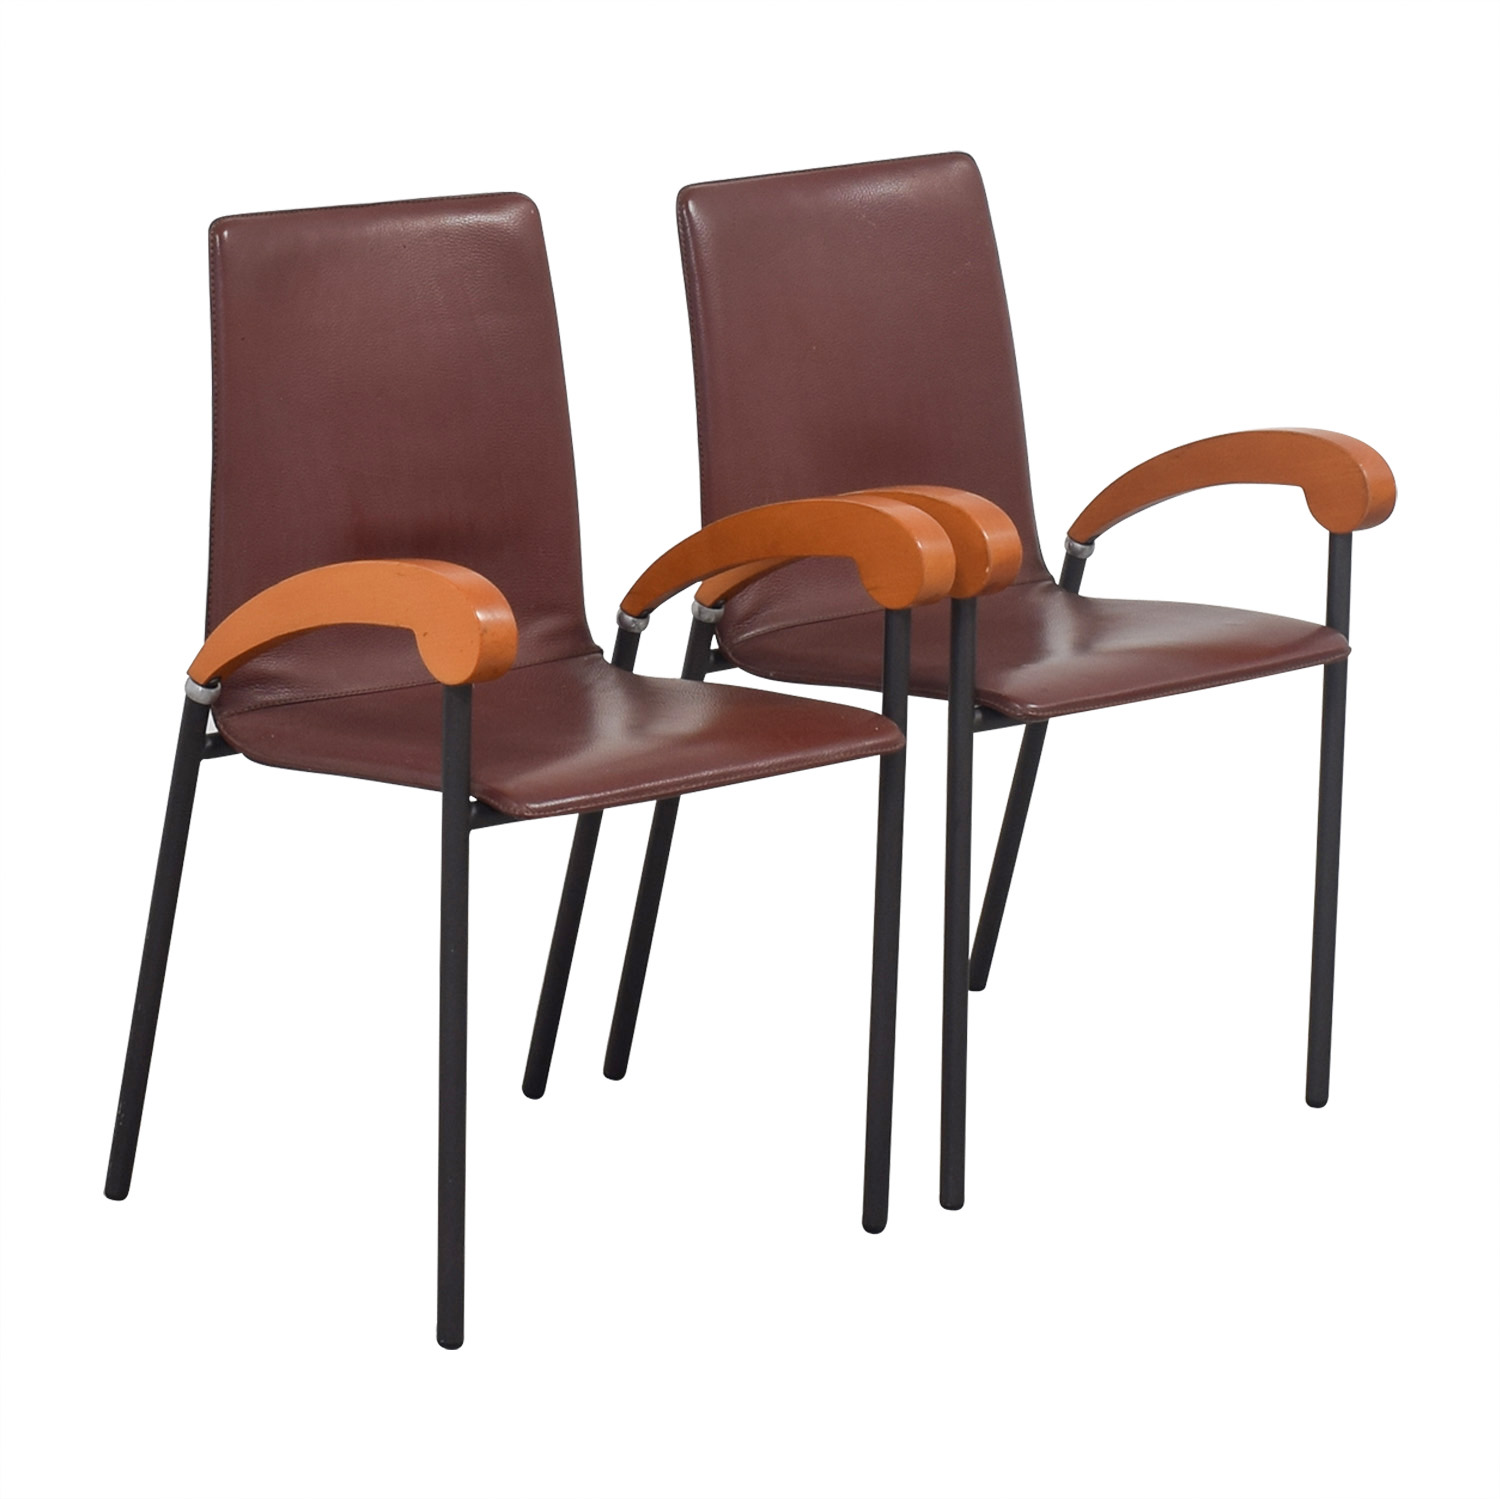 Cherry Wood Dining Chairs 90 Off Italian Brown Leather And Cherry Wood Dining